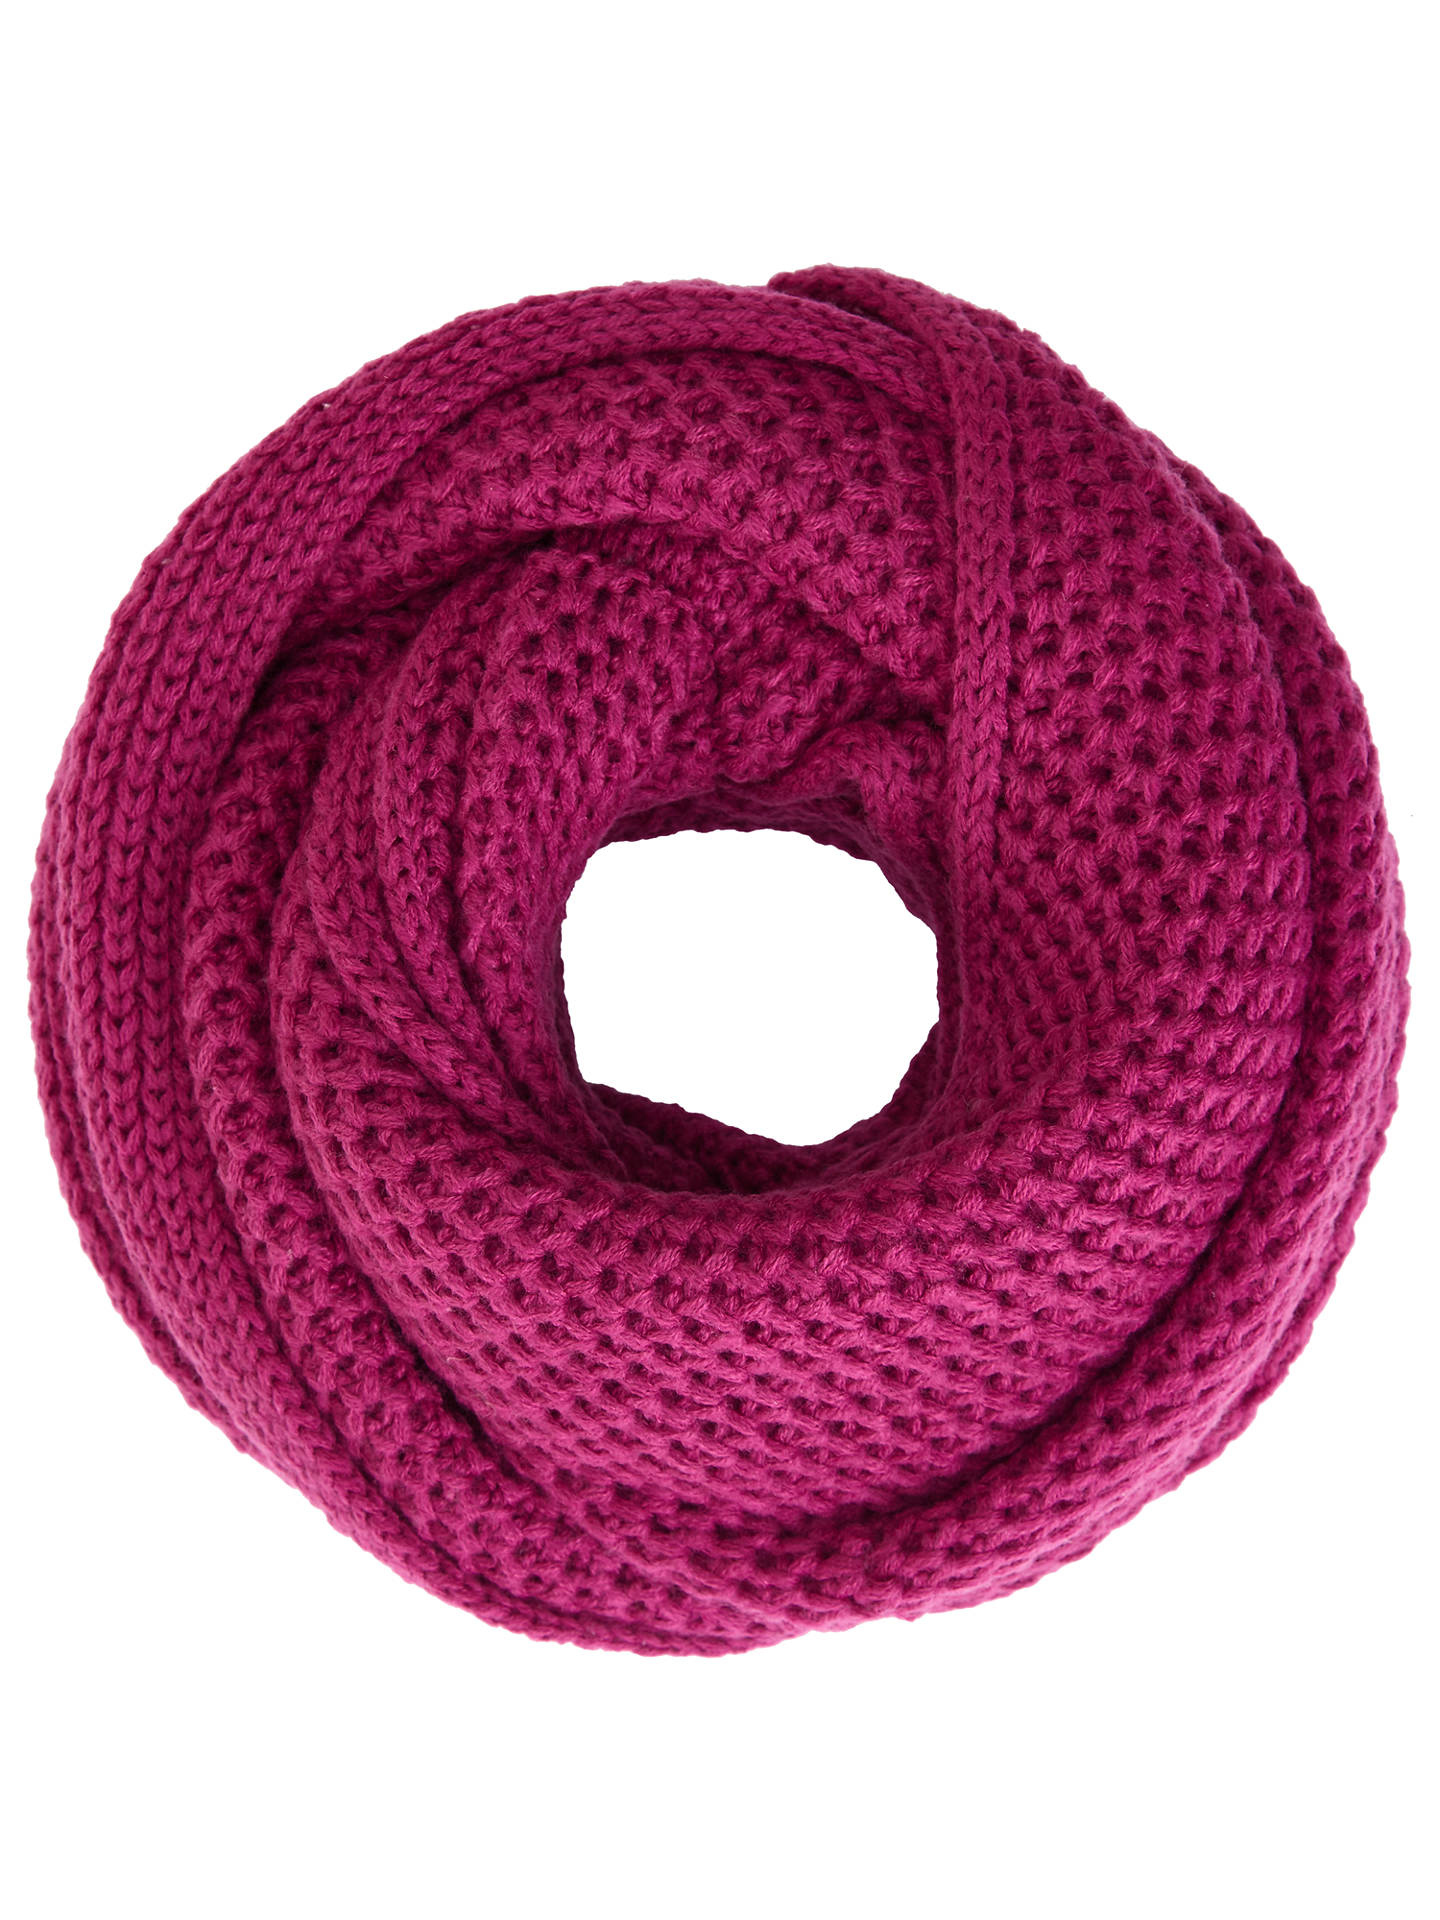 BuyJohn Lewis Purl Stitch Snood, Magenta Online at johnlewis.com